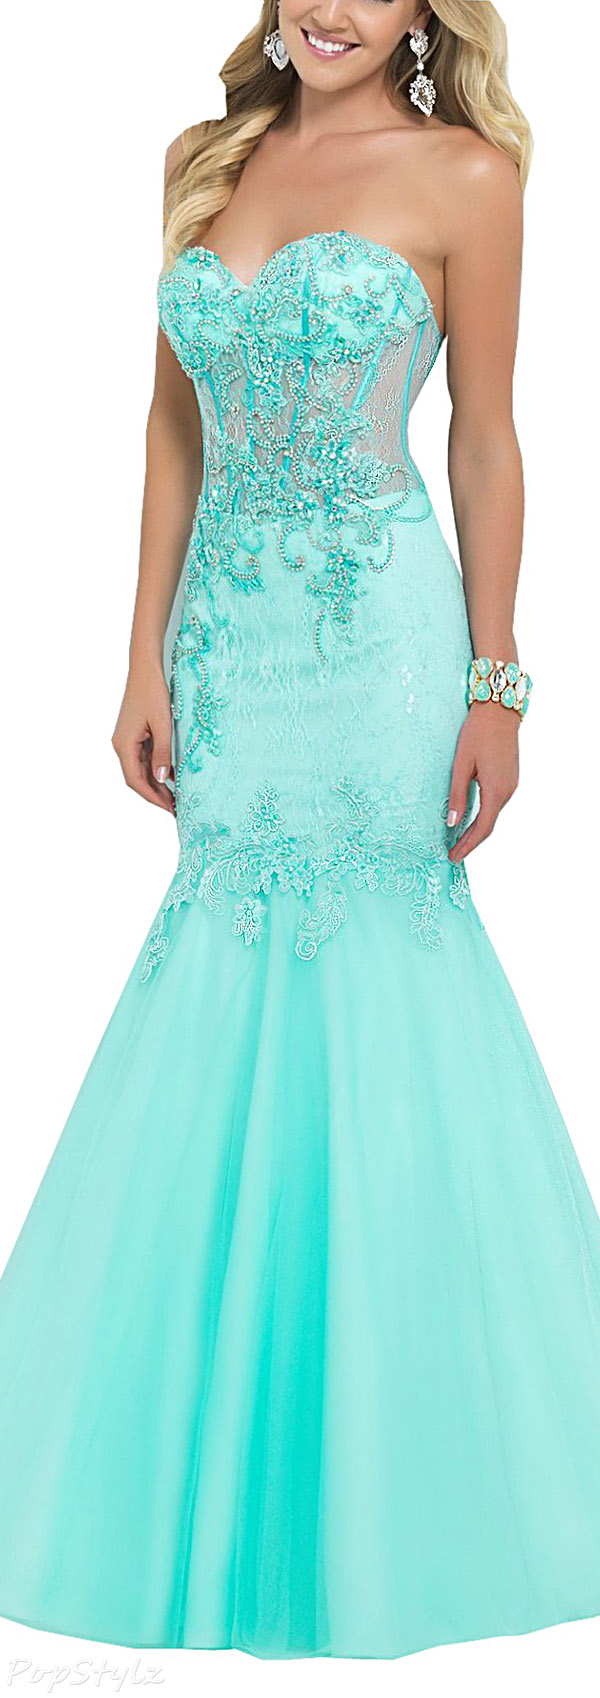 Harshori Strapless Sweetheart Sparkling Mermaid Evening Gown